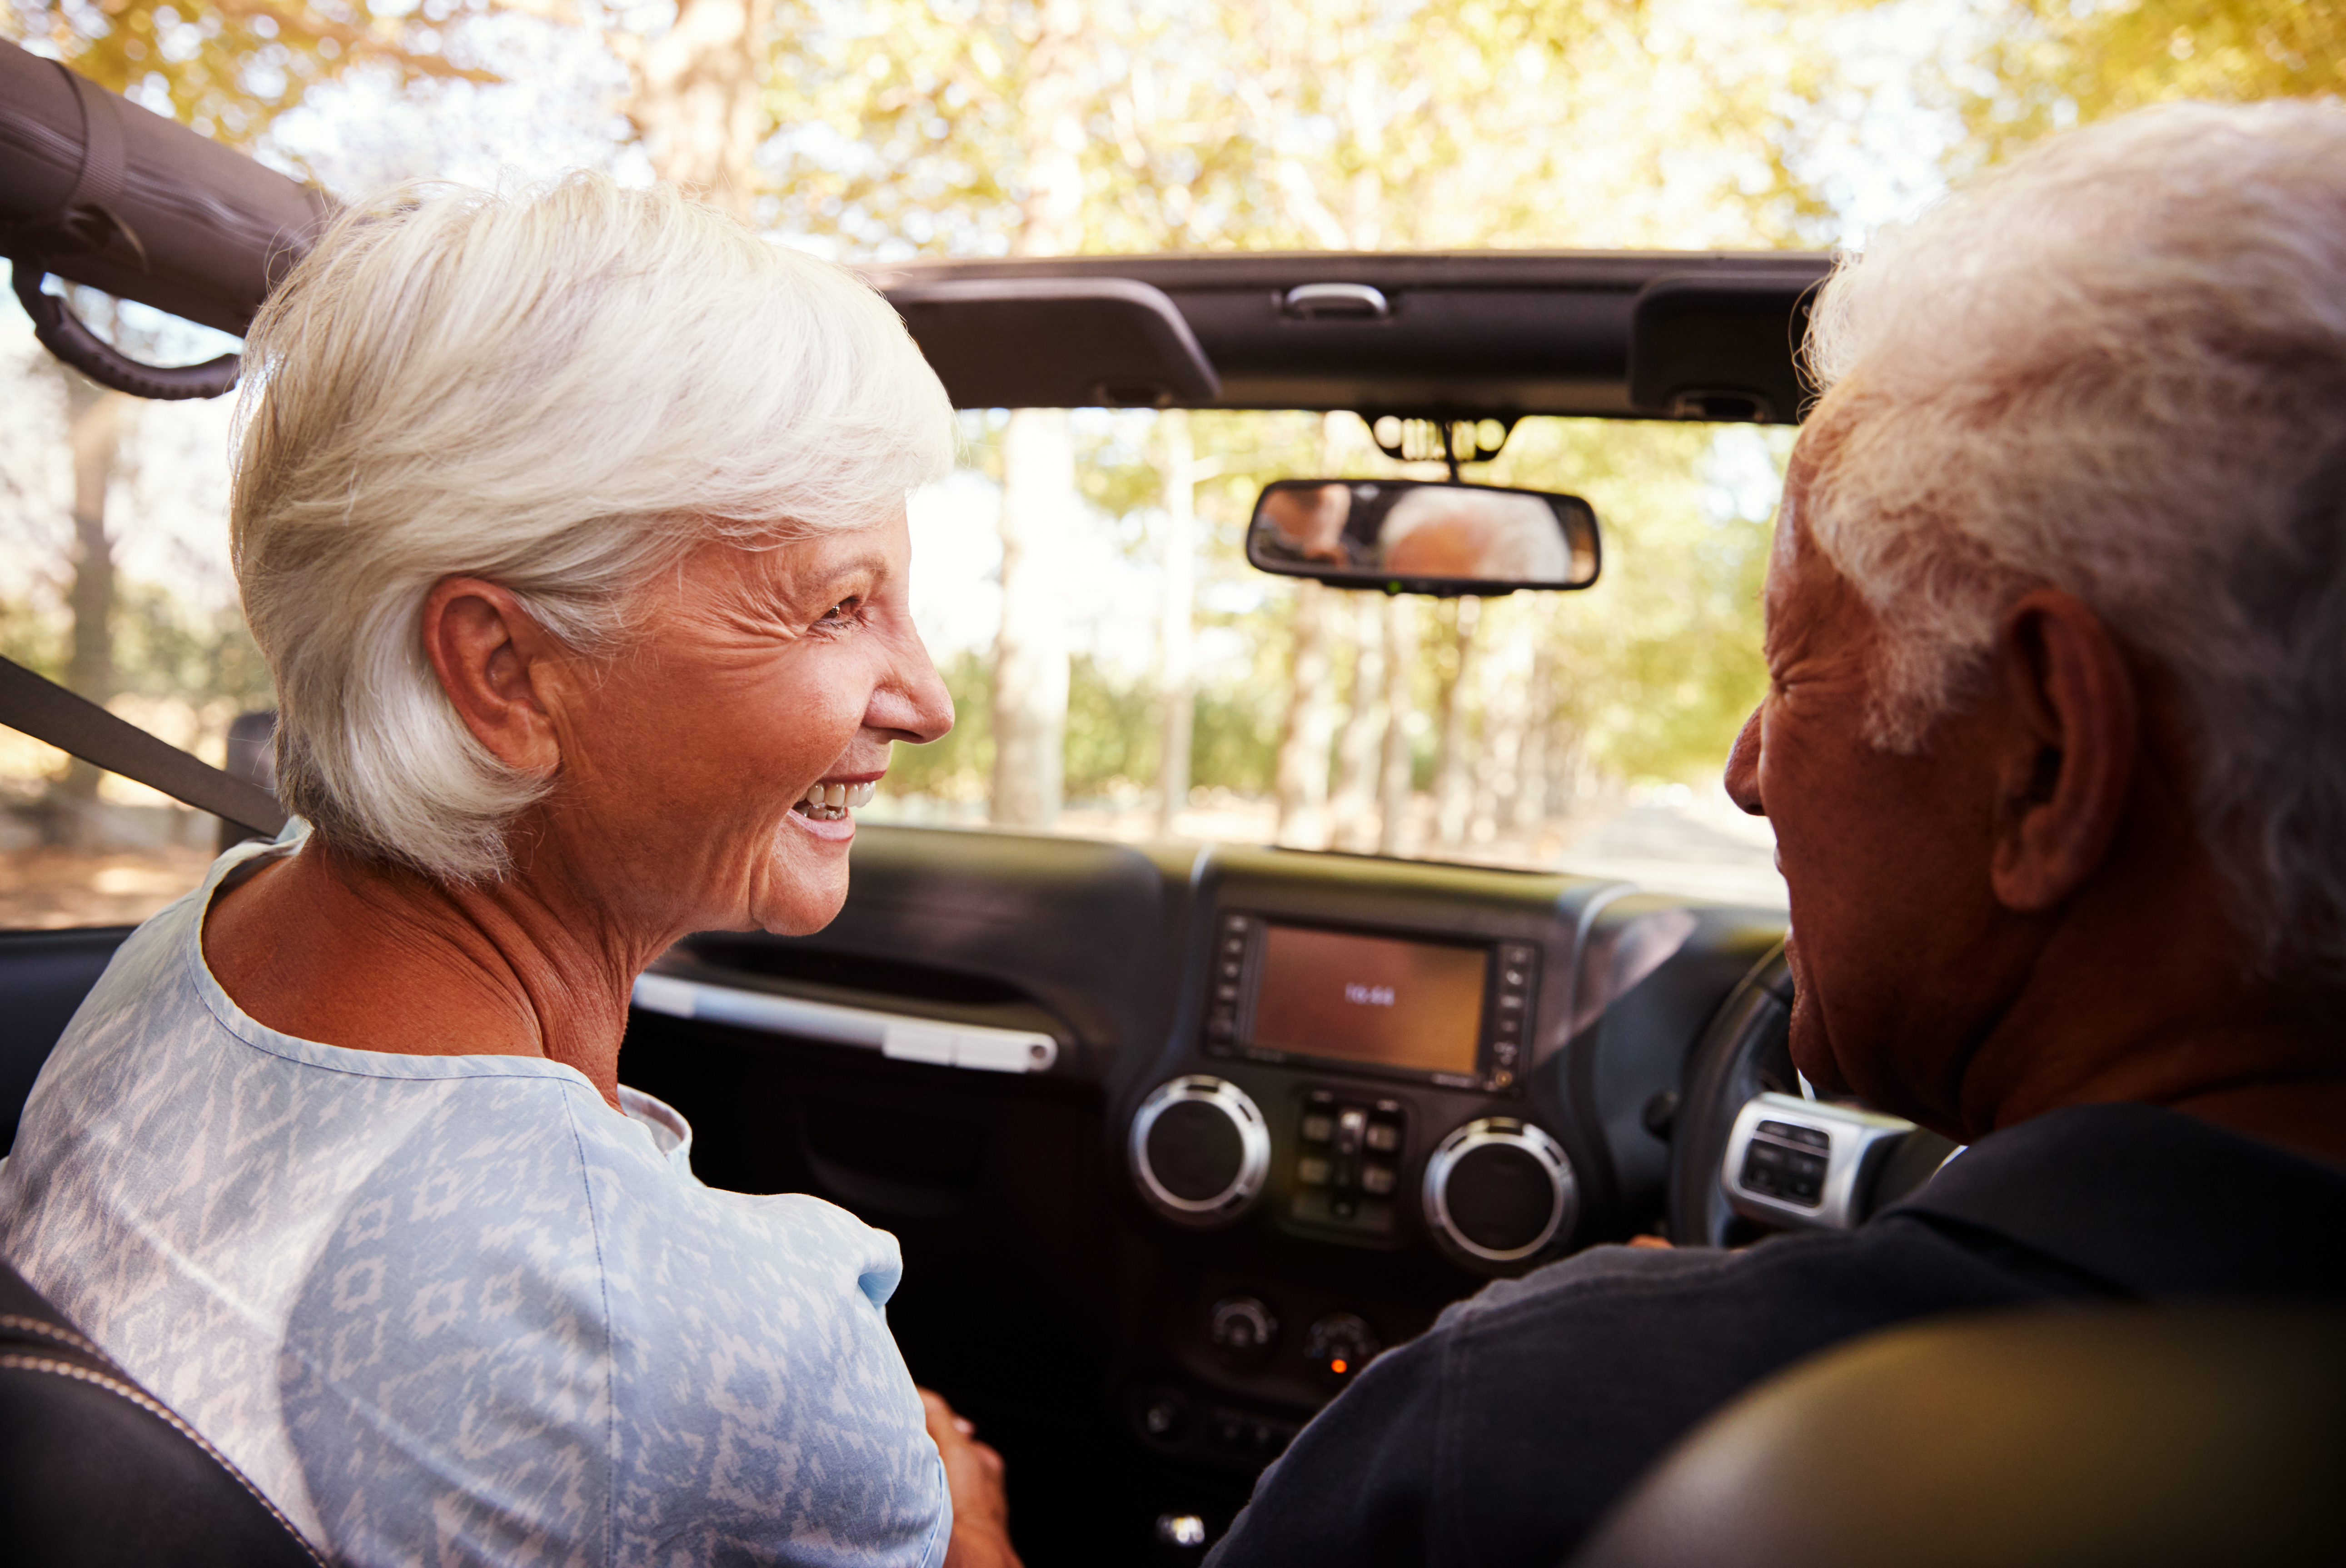 GettyImages 969662660 Elderly Drivers Do Have Car Accidents, Albuquerque